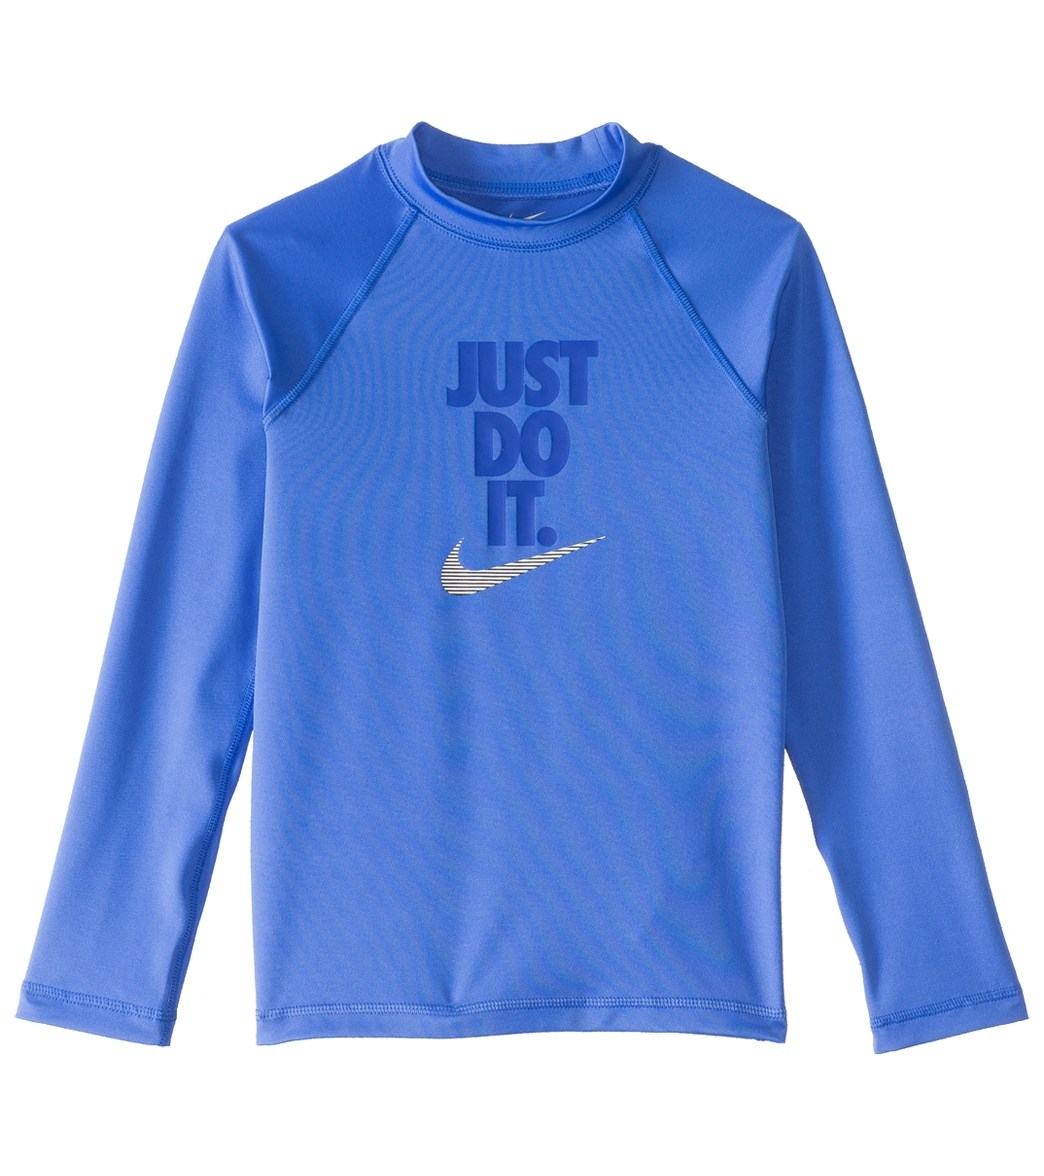 abe7d8df979 Nike Swimwear Girls' Just Do It Long Sleeve Hydro Top Rash Guard (7-14) at  SwimOutlet.com